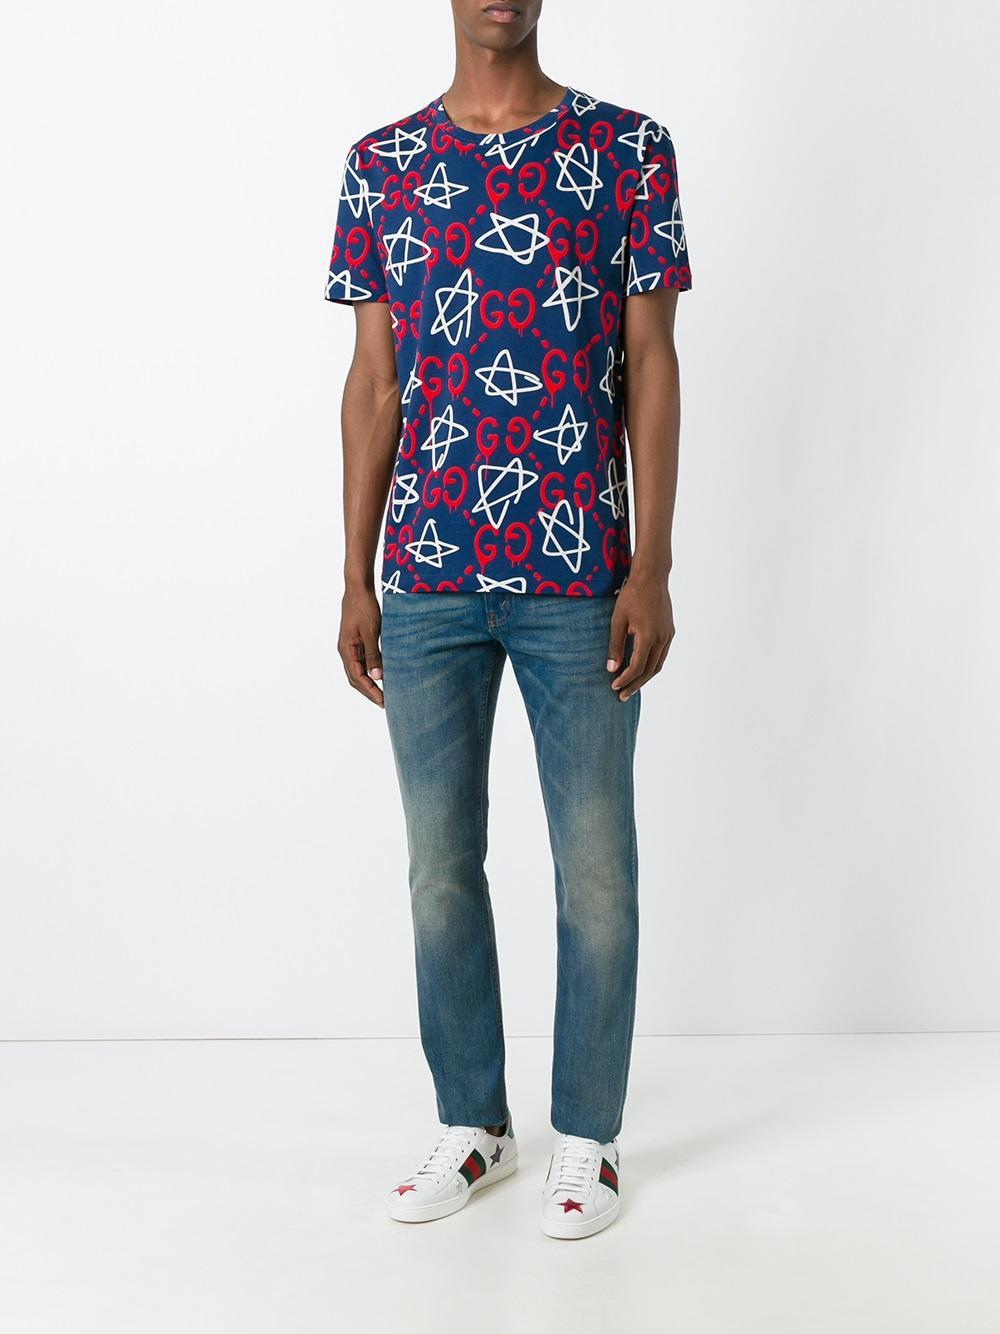 lyst gucci ghost t shirt in red for men. Black Bedroom Furniture Sets. Home Design Ideas